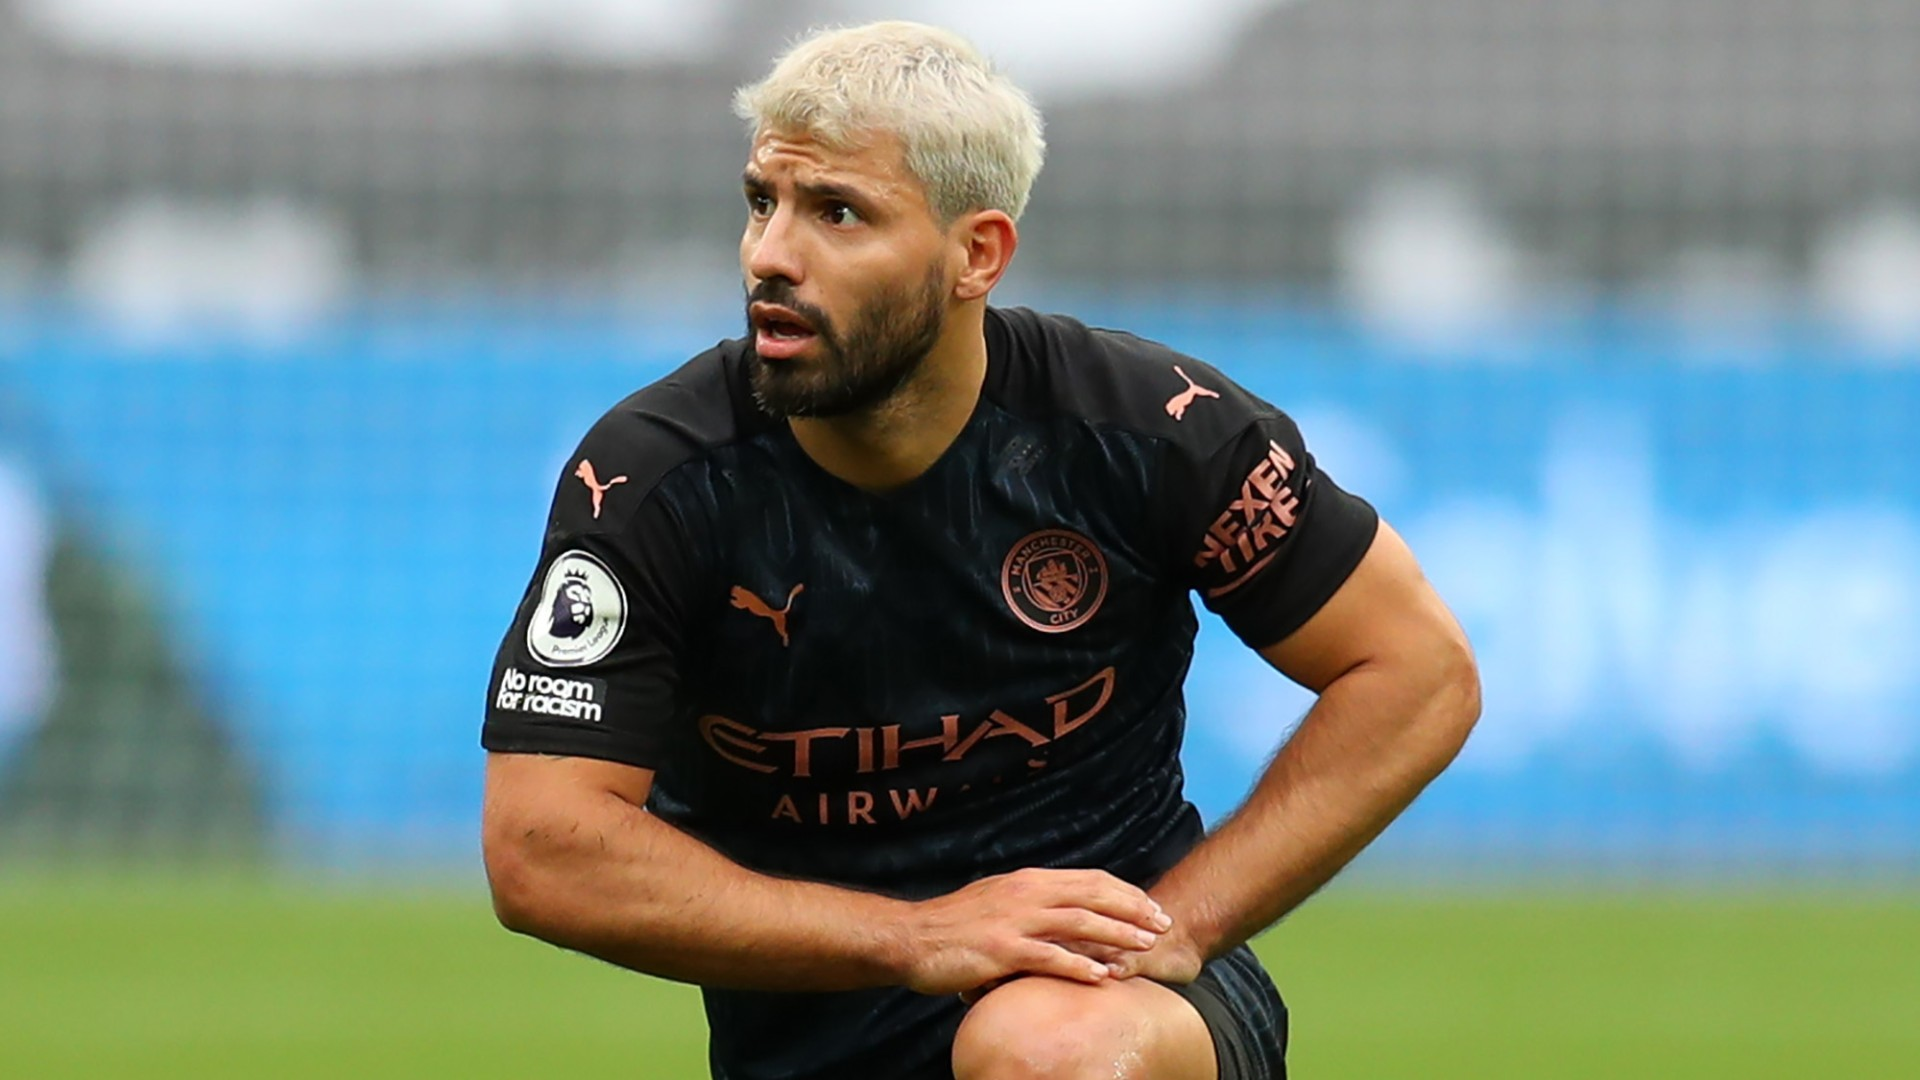 Aguero self-isolating after contracting coronavirus